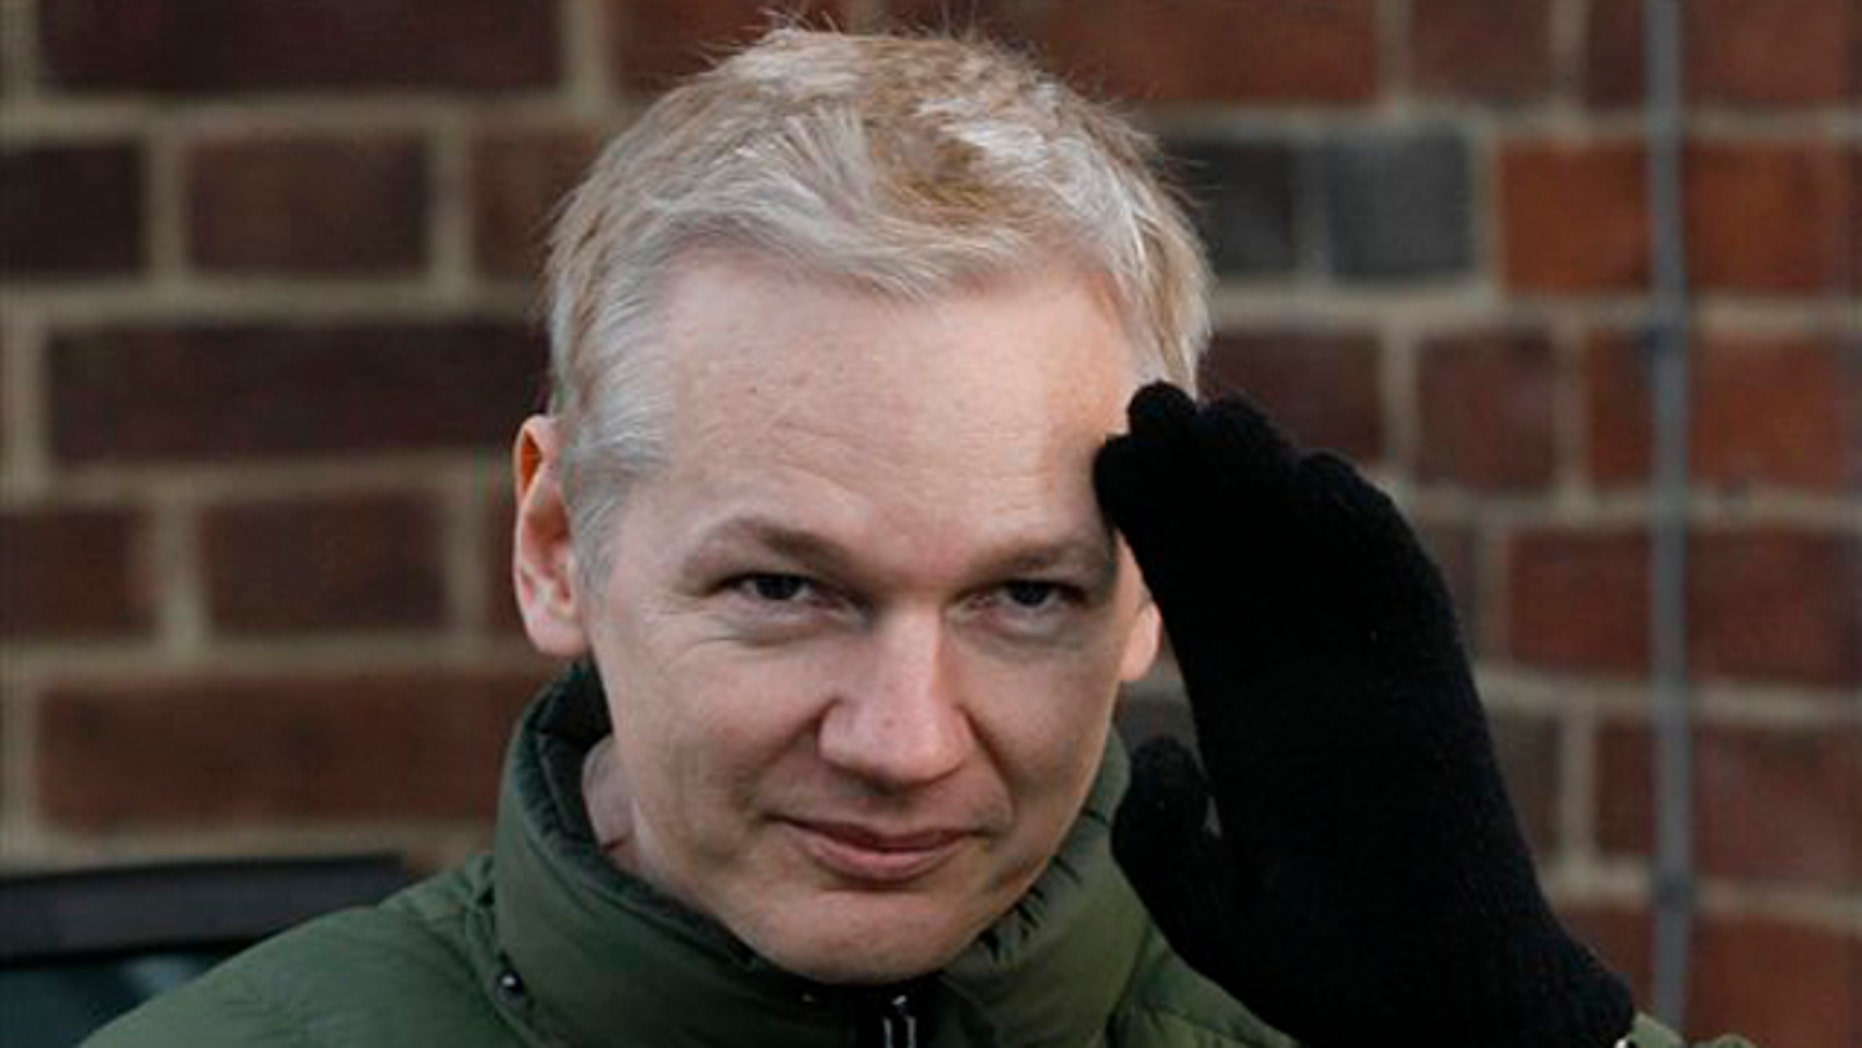 WikiLeaks founder Julian Assange gestures as he gets back into a car at Beccles Police Station in Suffolk, England, on Dec. 17.